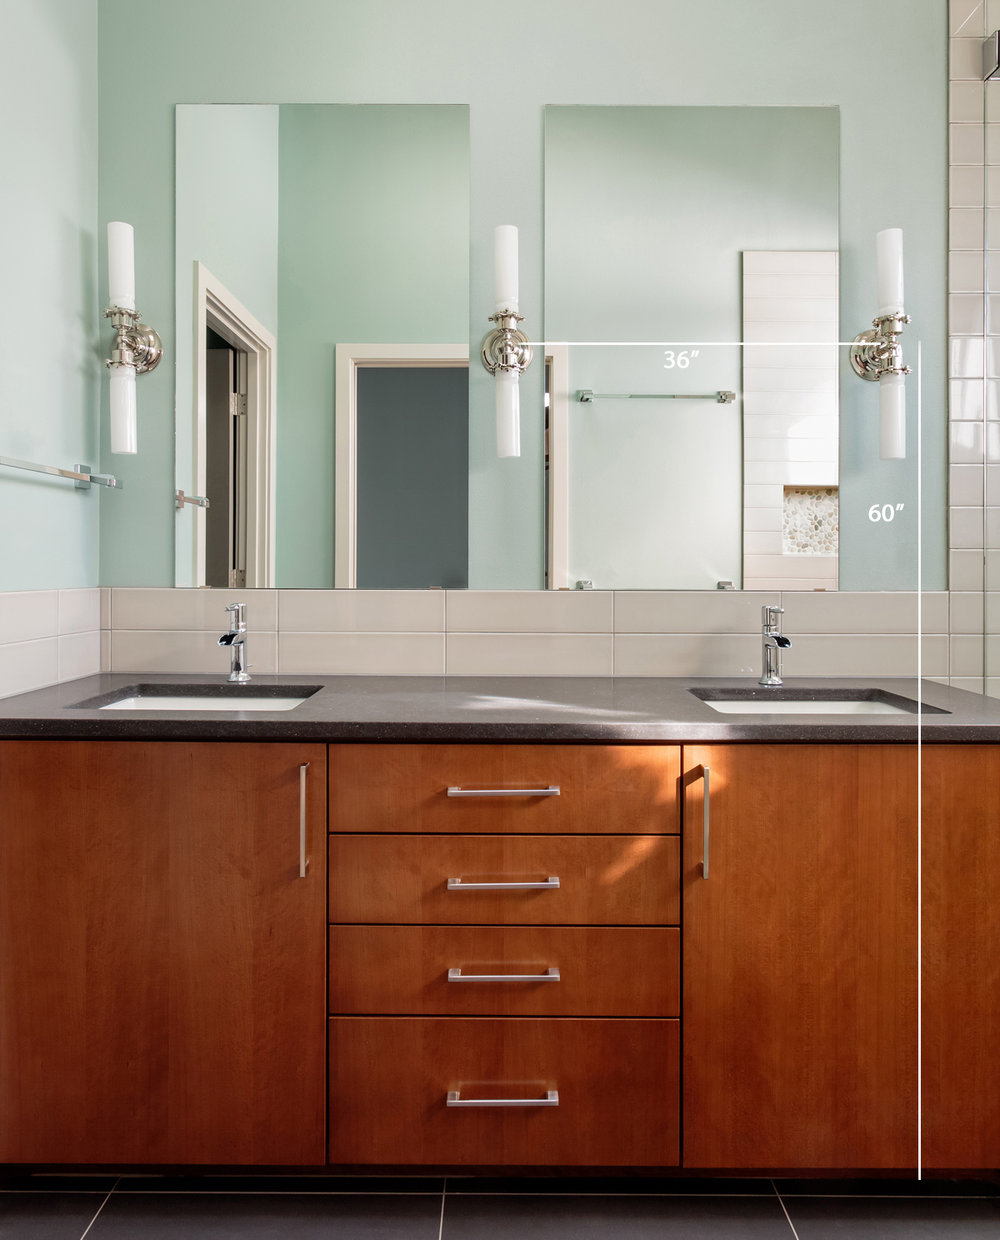 Bathroom sconces distance from floor